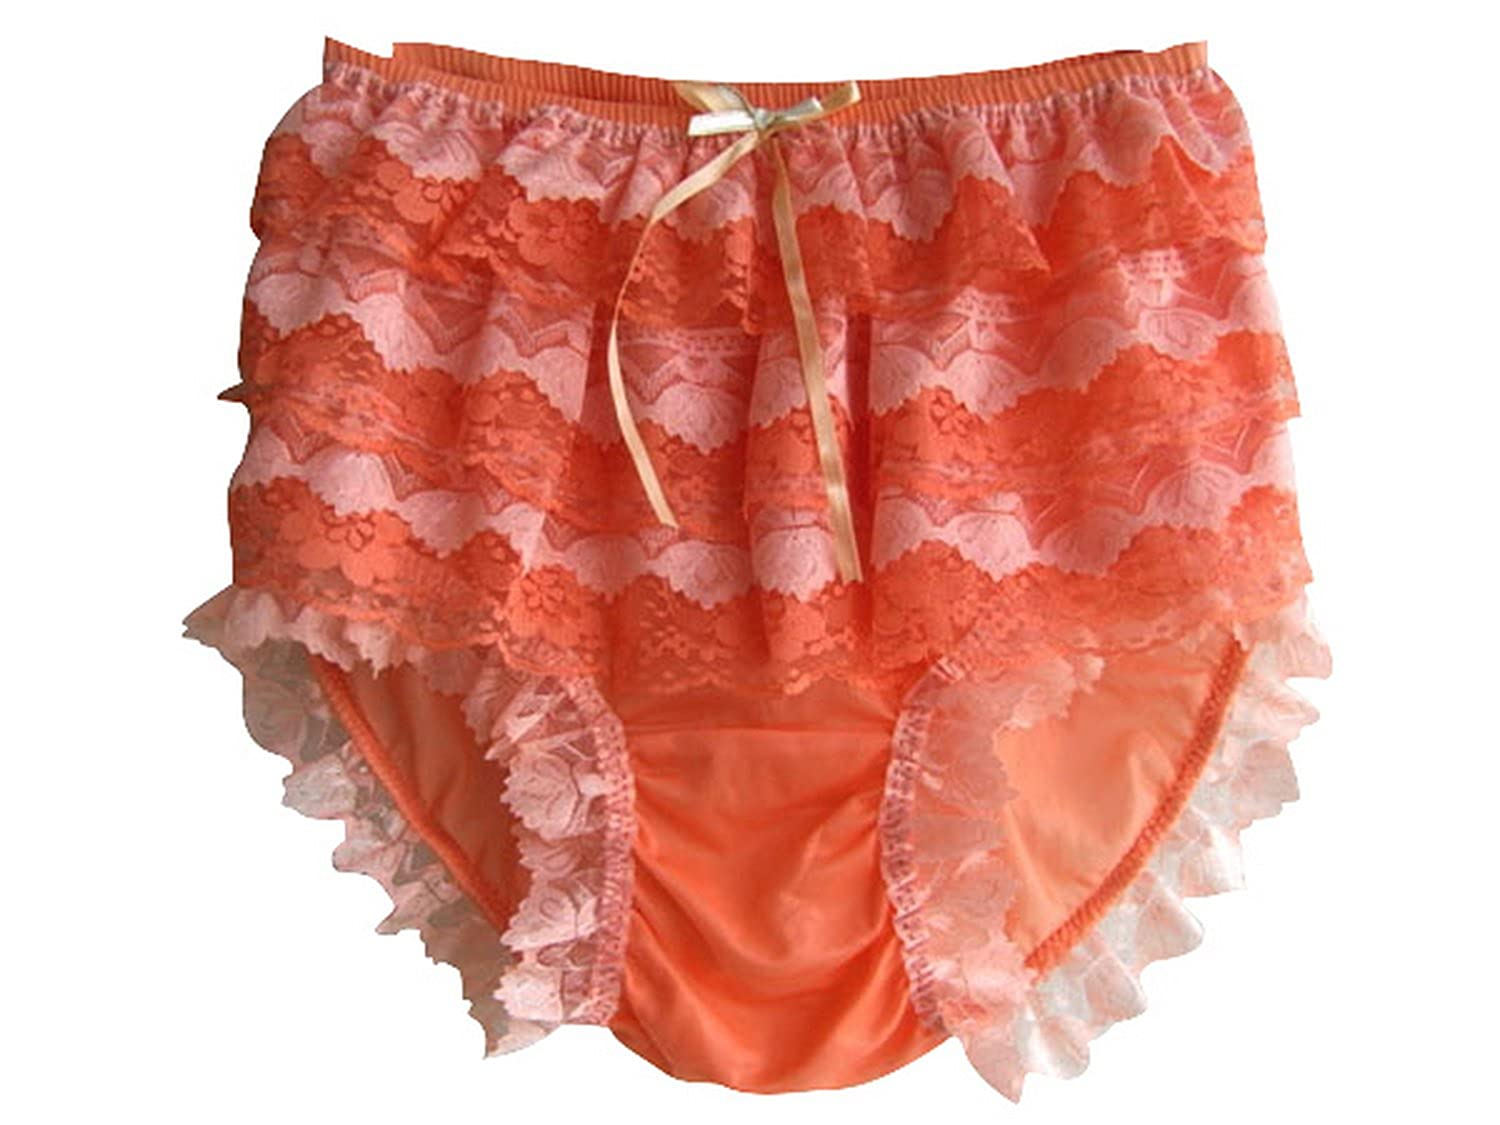 Frauen Handgefertigt Schlüpfer Orange Neu S9H4 Orange Briefs Nylon Panties Knicker Lacy kaufen